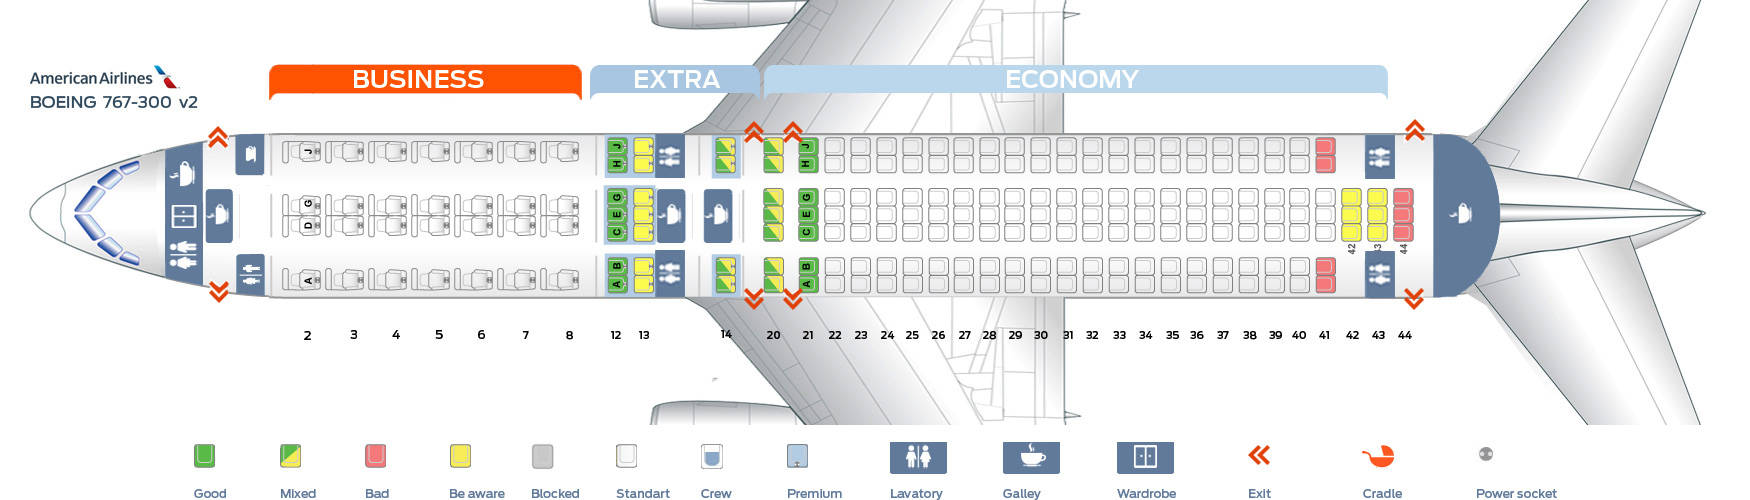 Seat_map_American_Airlines_Boeing_767-300_v2